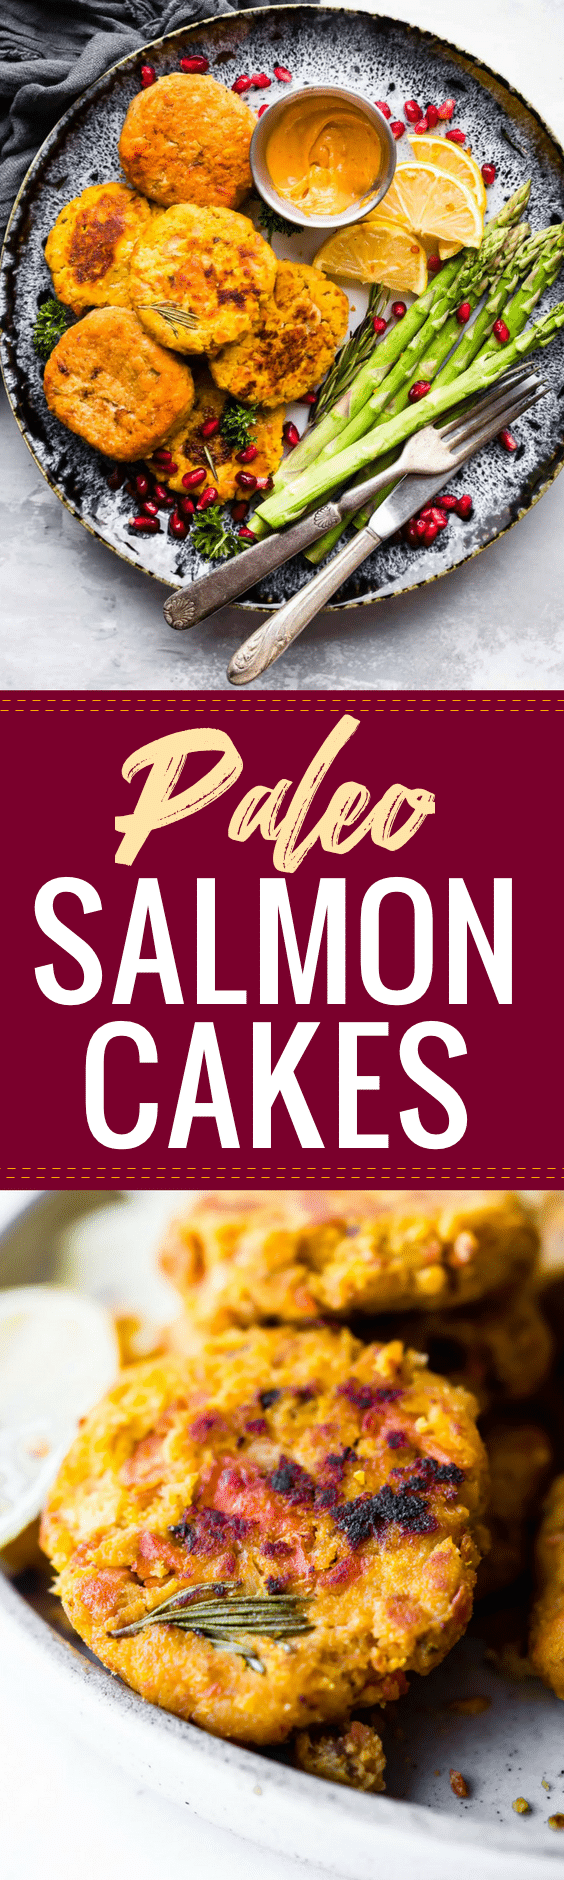 Paleo Salmon Cakes are quick, easy to make, delicious meal or appetizer! These Salmon cakes are literally veggie packed and protein packed, not to mention whole30 friendly.  #paleo #mealprep #healthy #appetizer #whole30